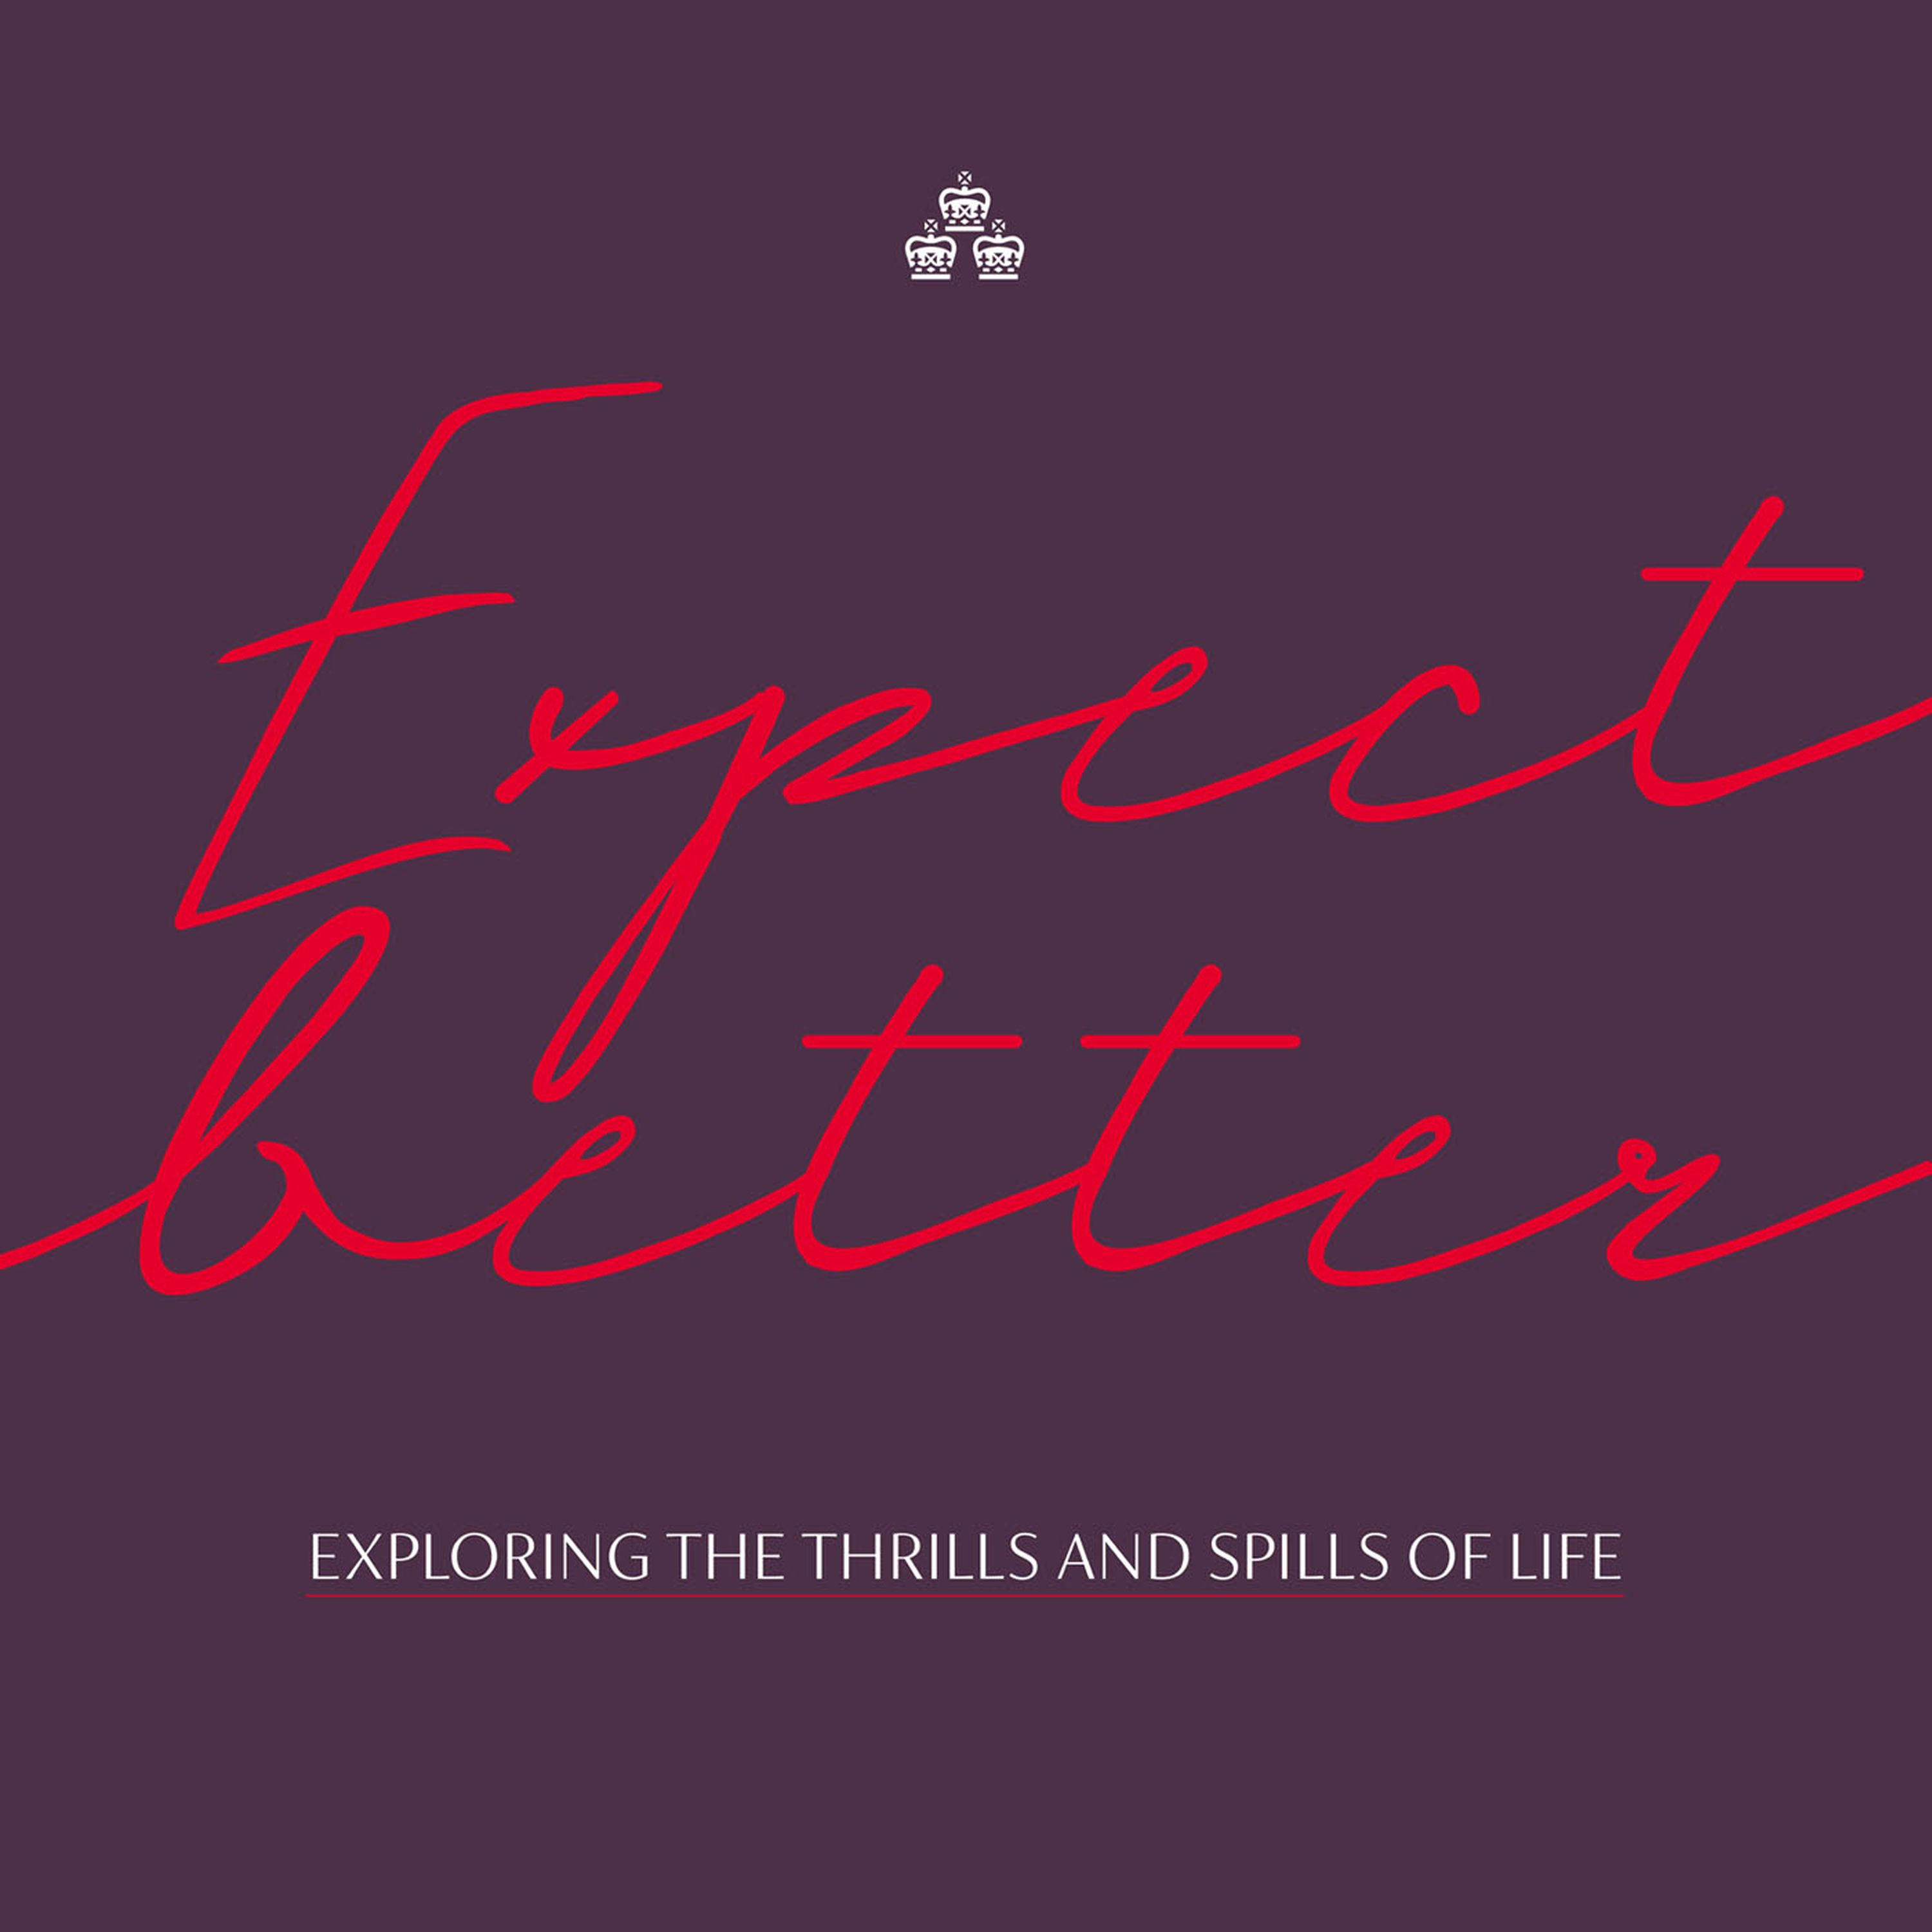 Welcome to Expect Better